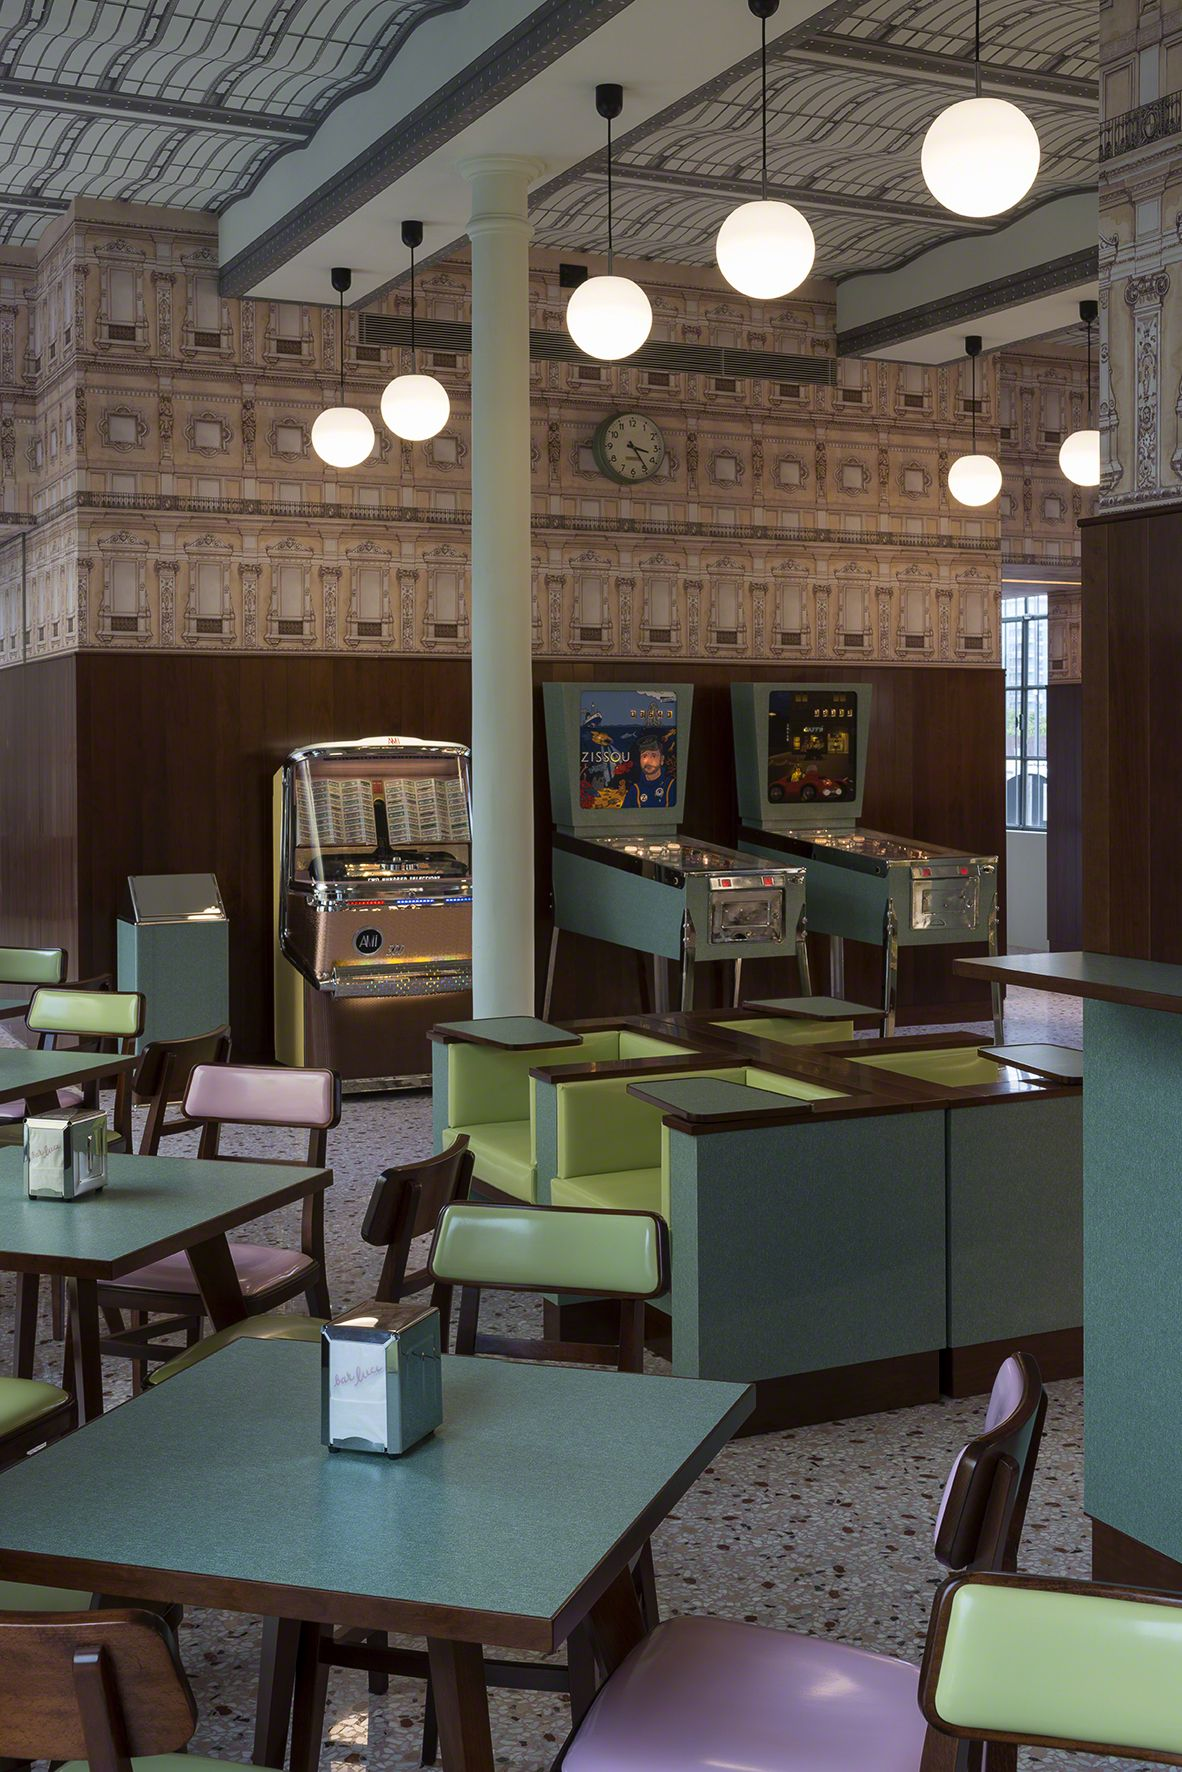 Bar Luce at the Fondazione Prada in Milan